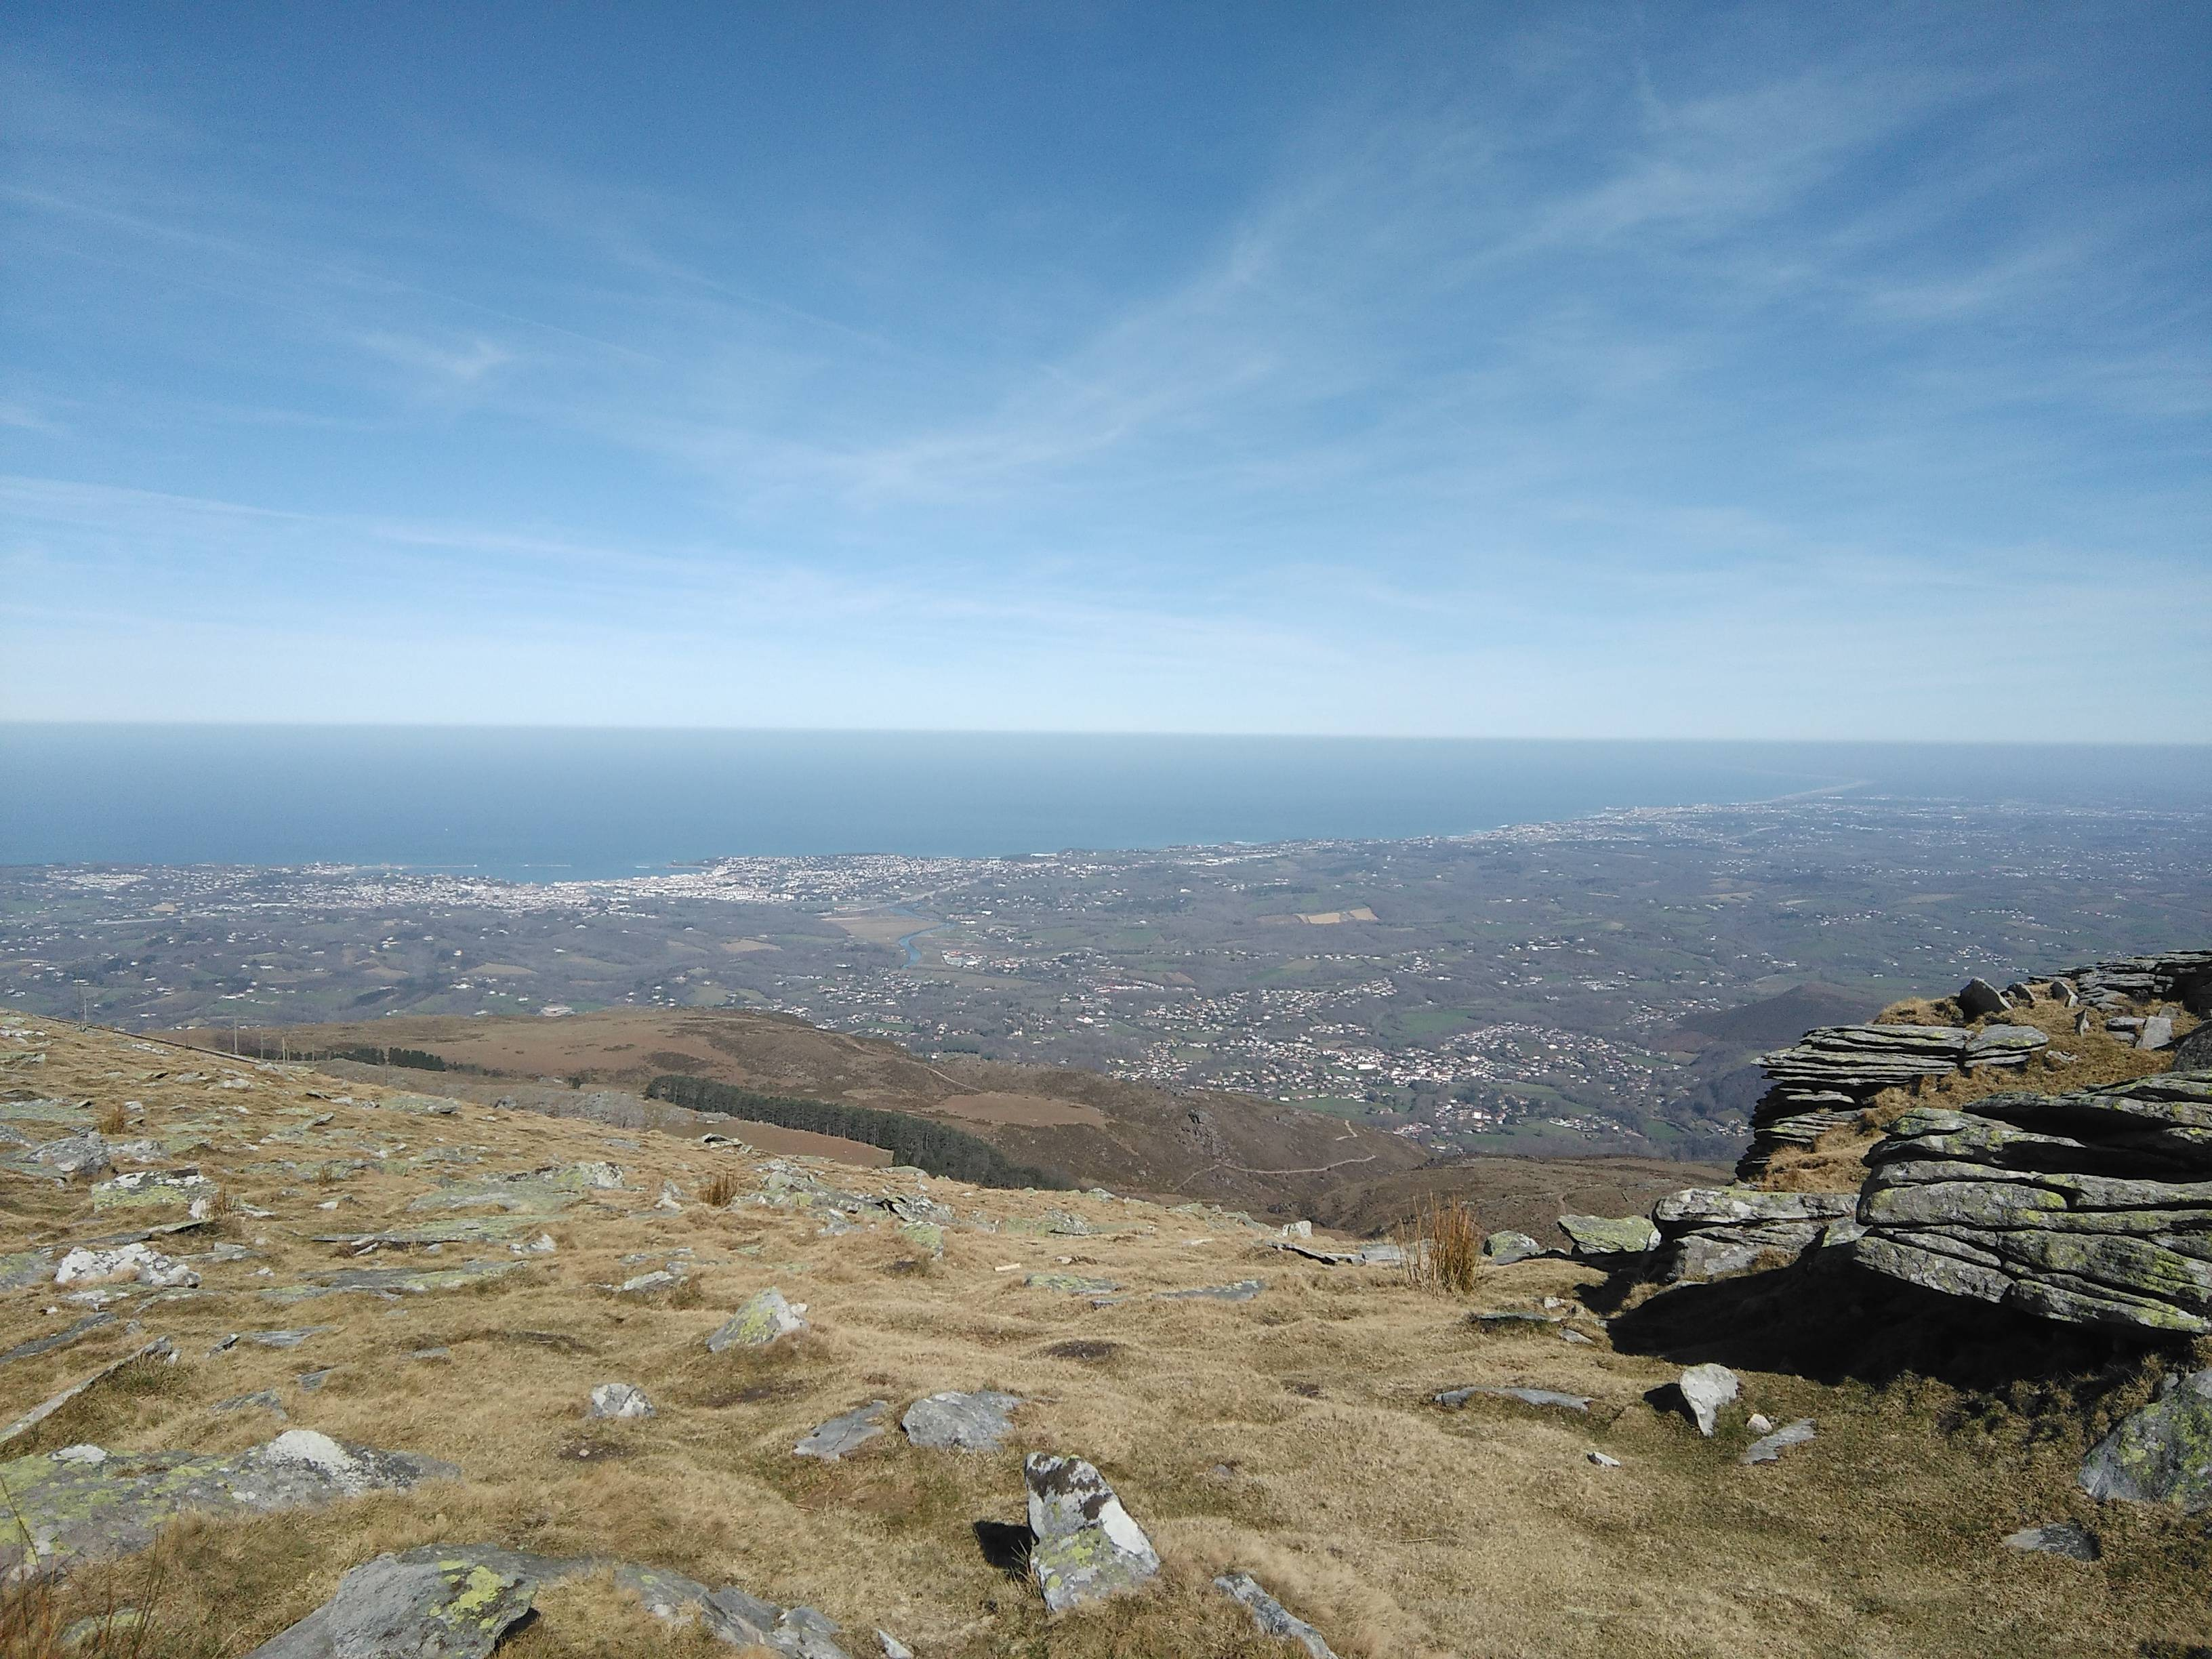 Photo 2: La Rhune, superbe point de vue Basque !